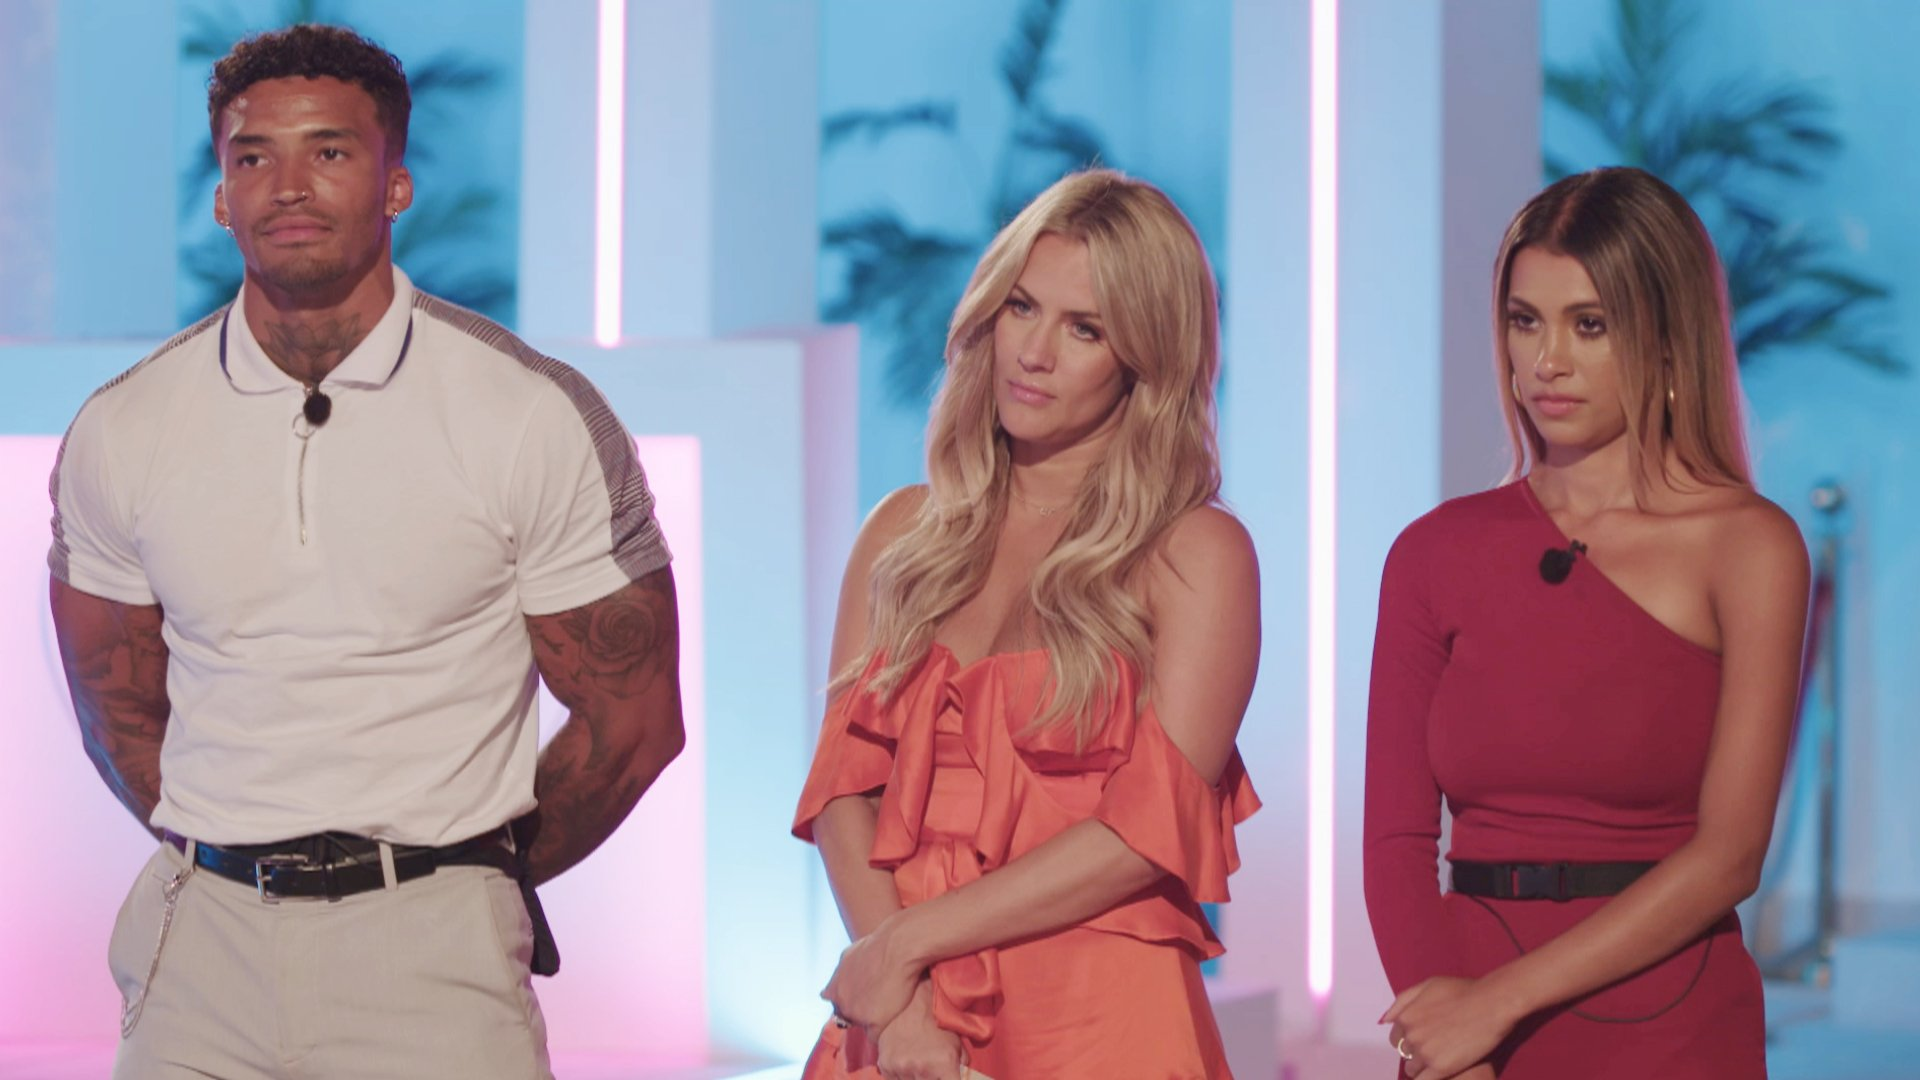 Love Island fans claim show is 'fixed' so Michael and Amber get back together